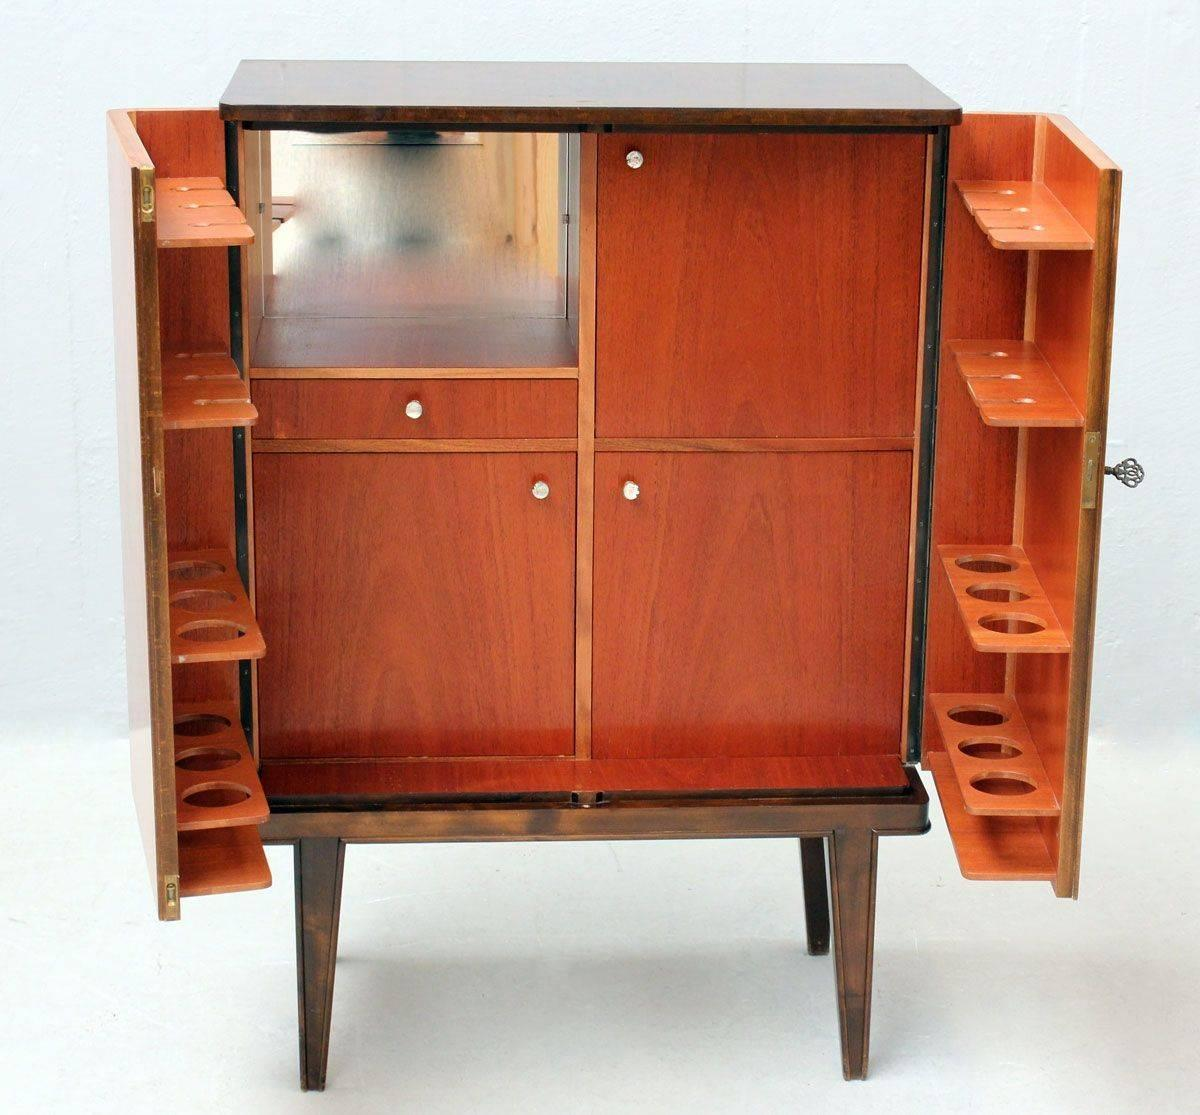 Funkis Cocktail Cabinet For Sale At 1stdibs